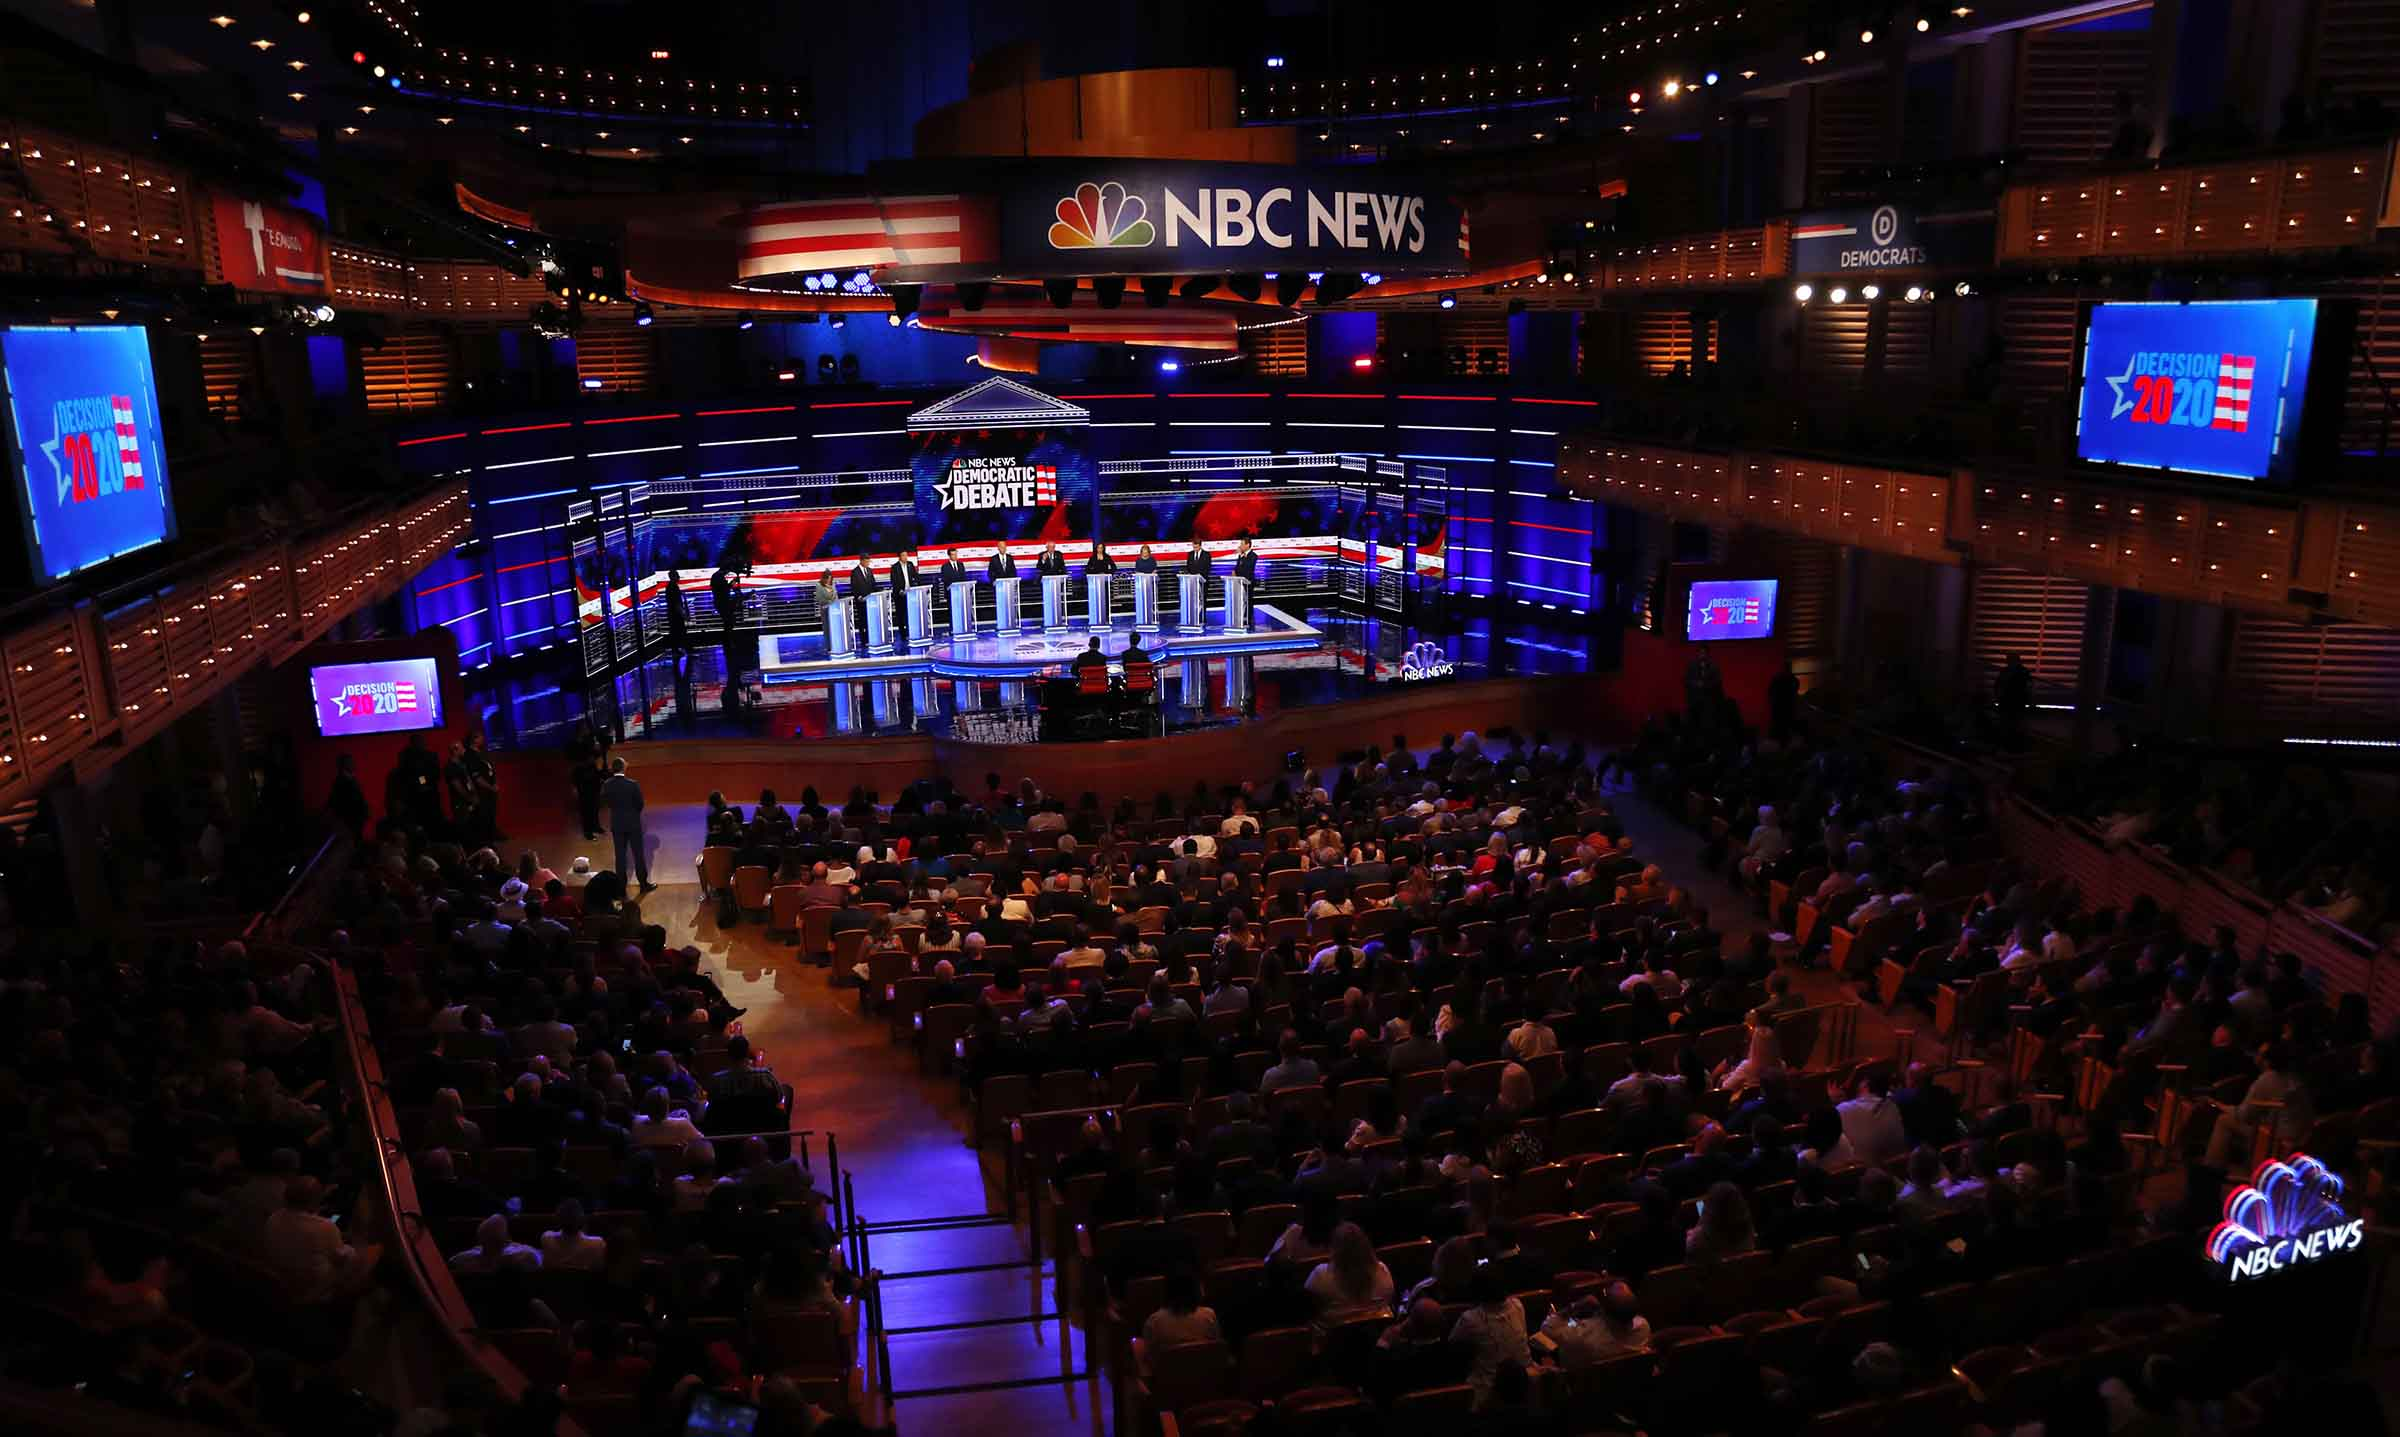 Democratic presidential candidates on stage during a Democratic primary debate hosted by NBC News at the Adrienne Arsht Center for the Performing Arts, Thursday, June 27, 2019, in Miami.